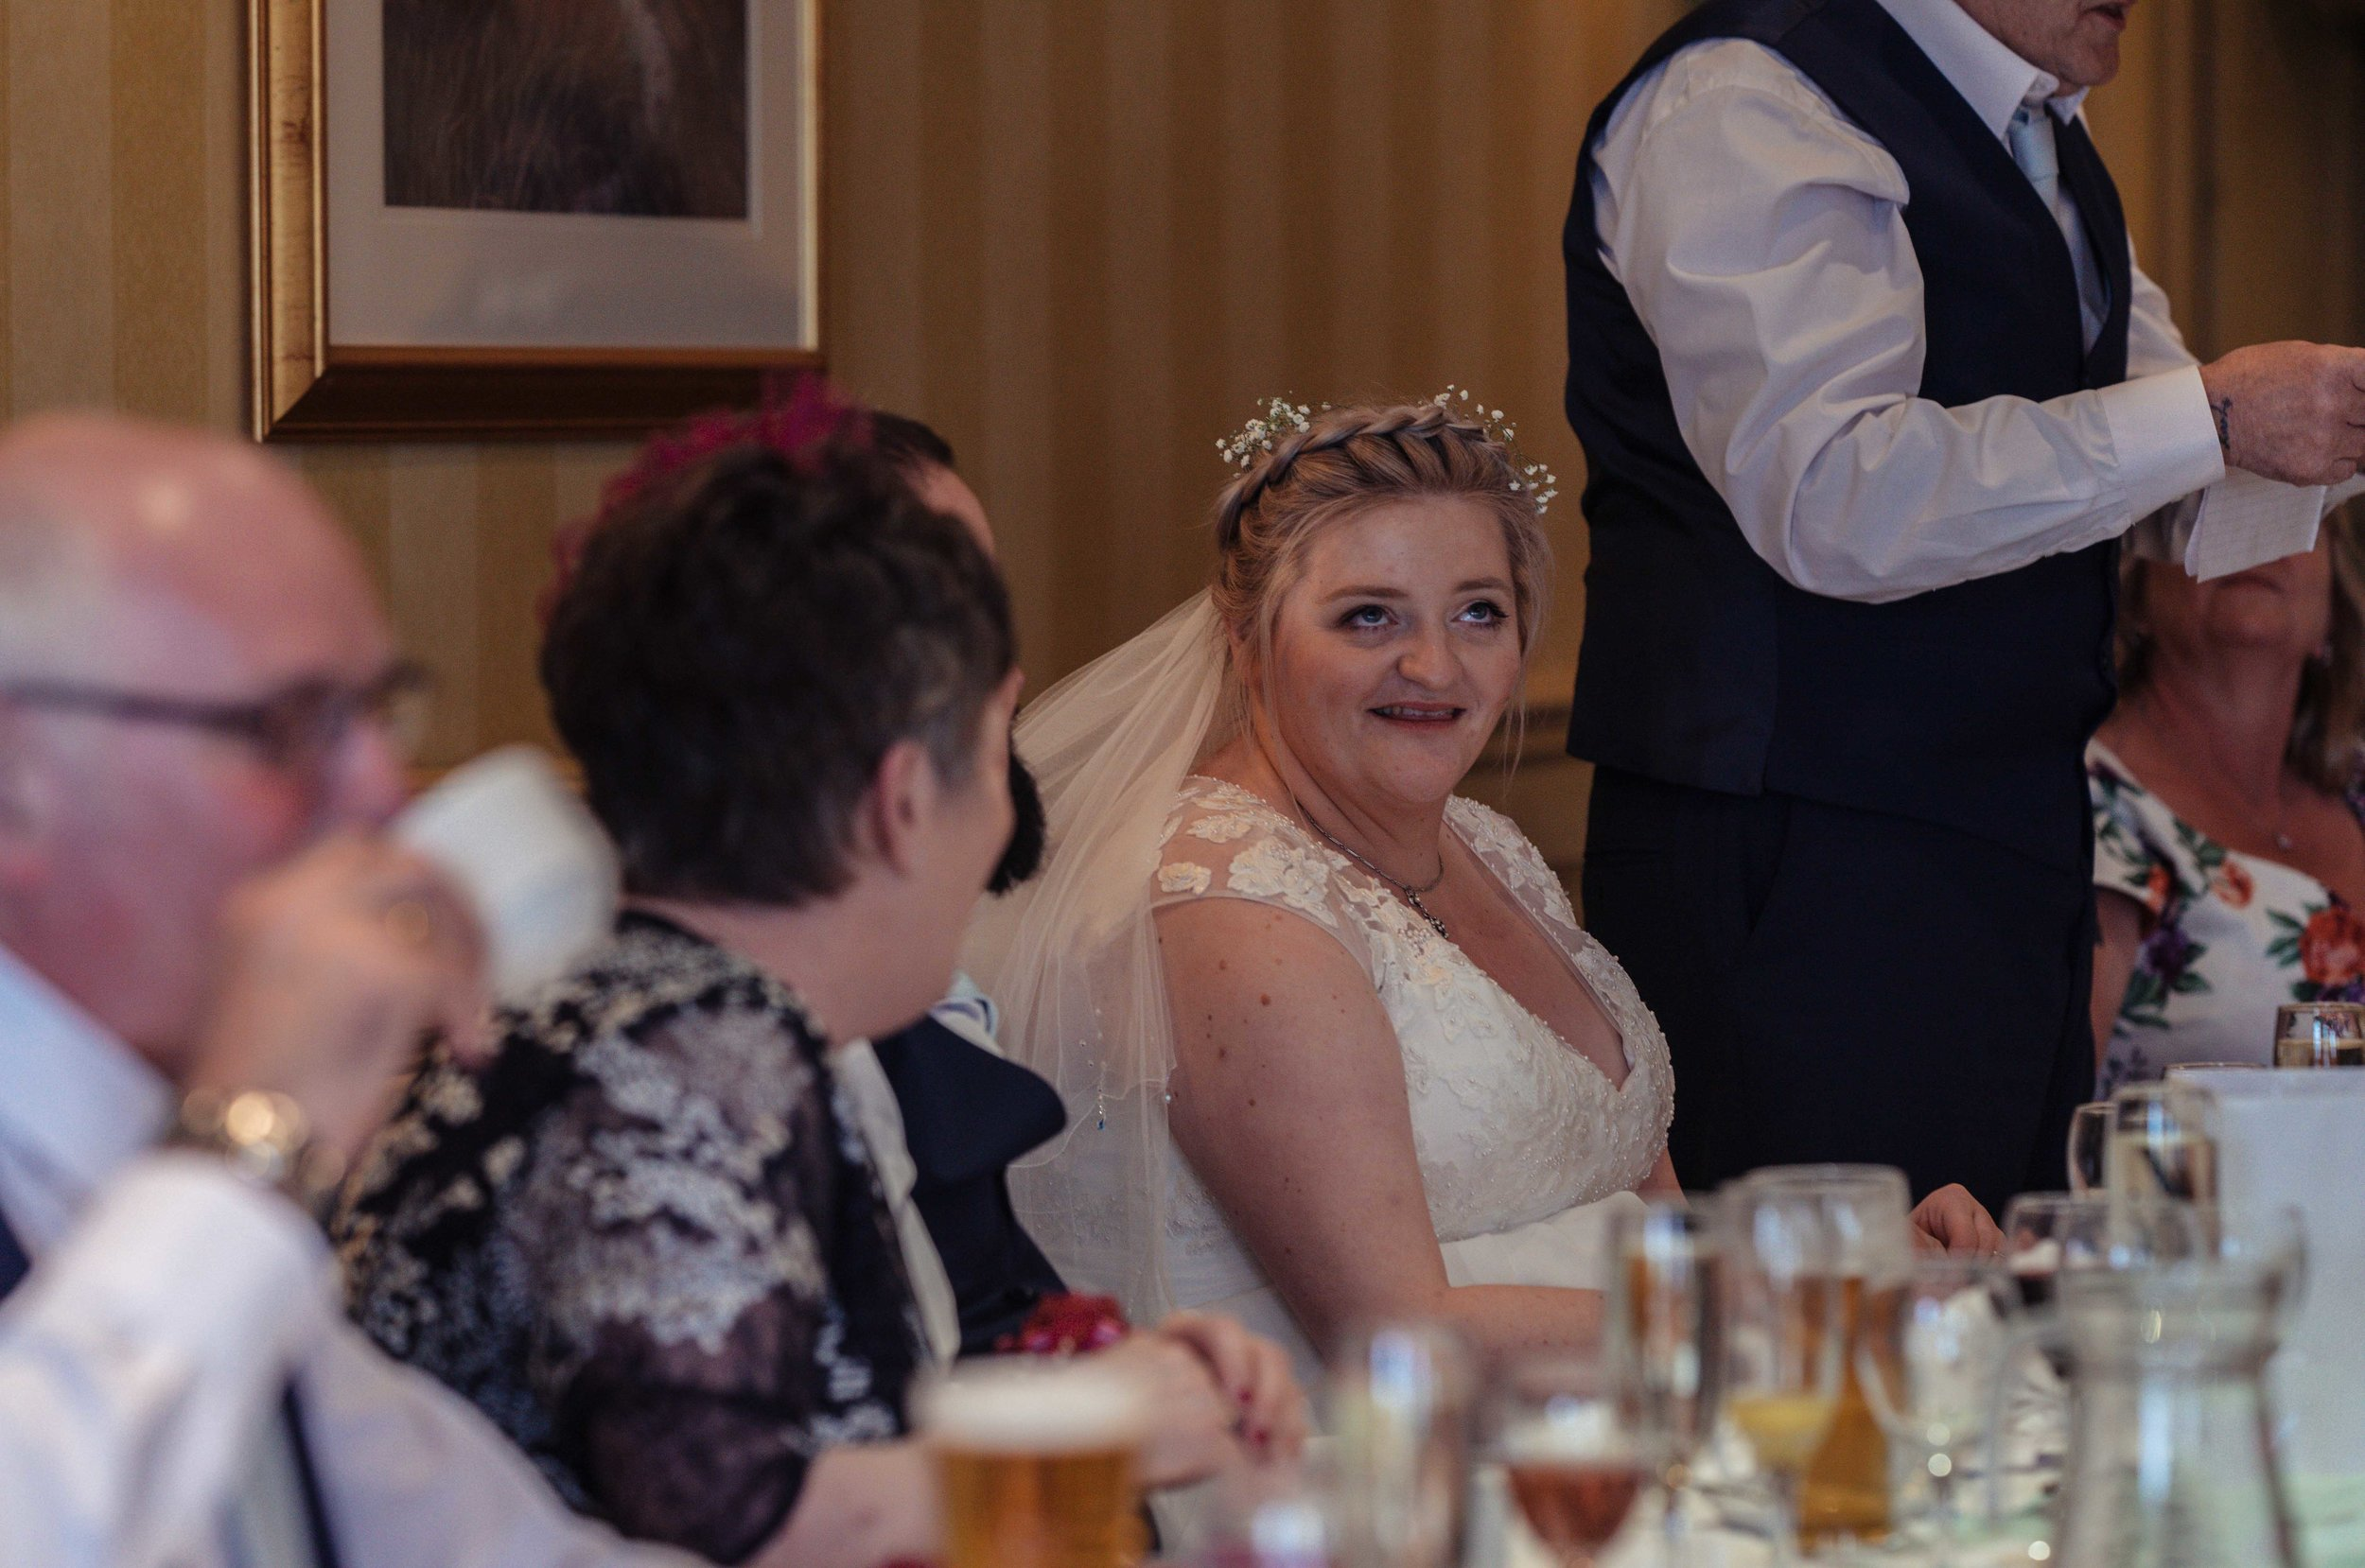 The bride waits for a joke during the wedding speeches